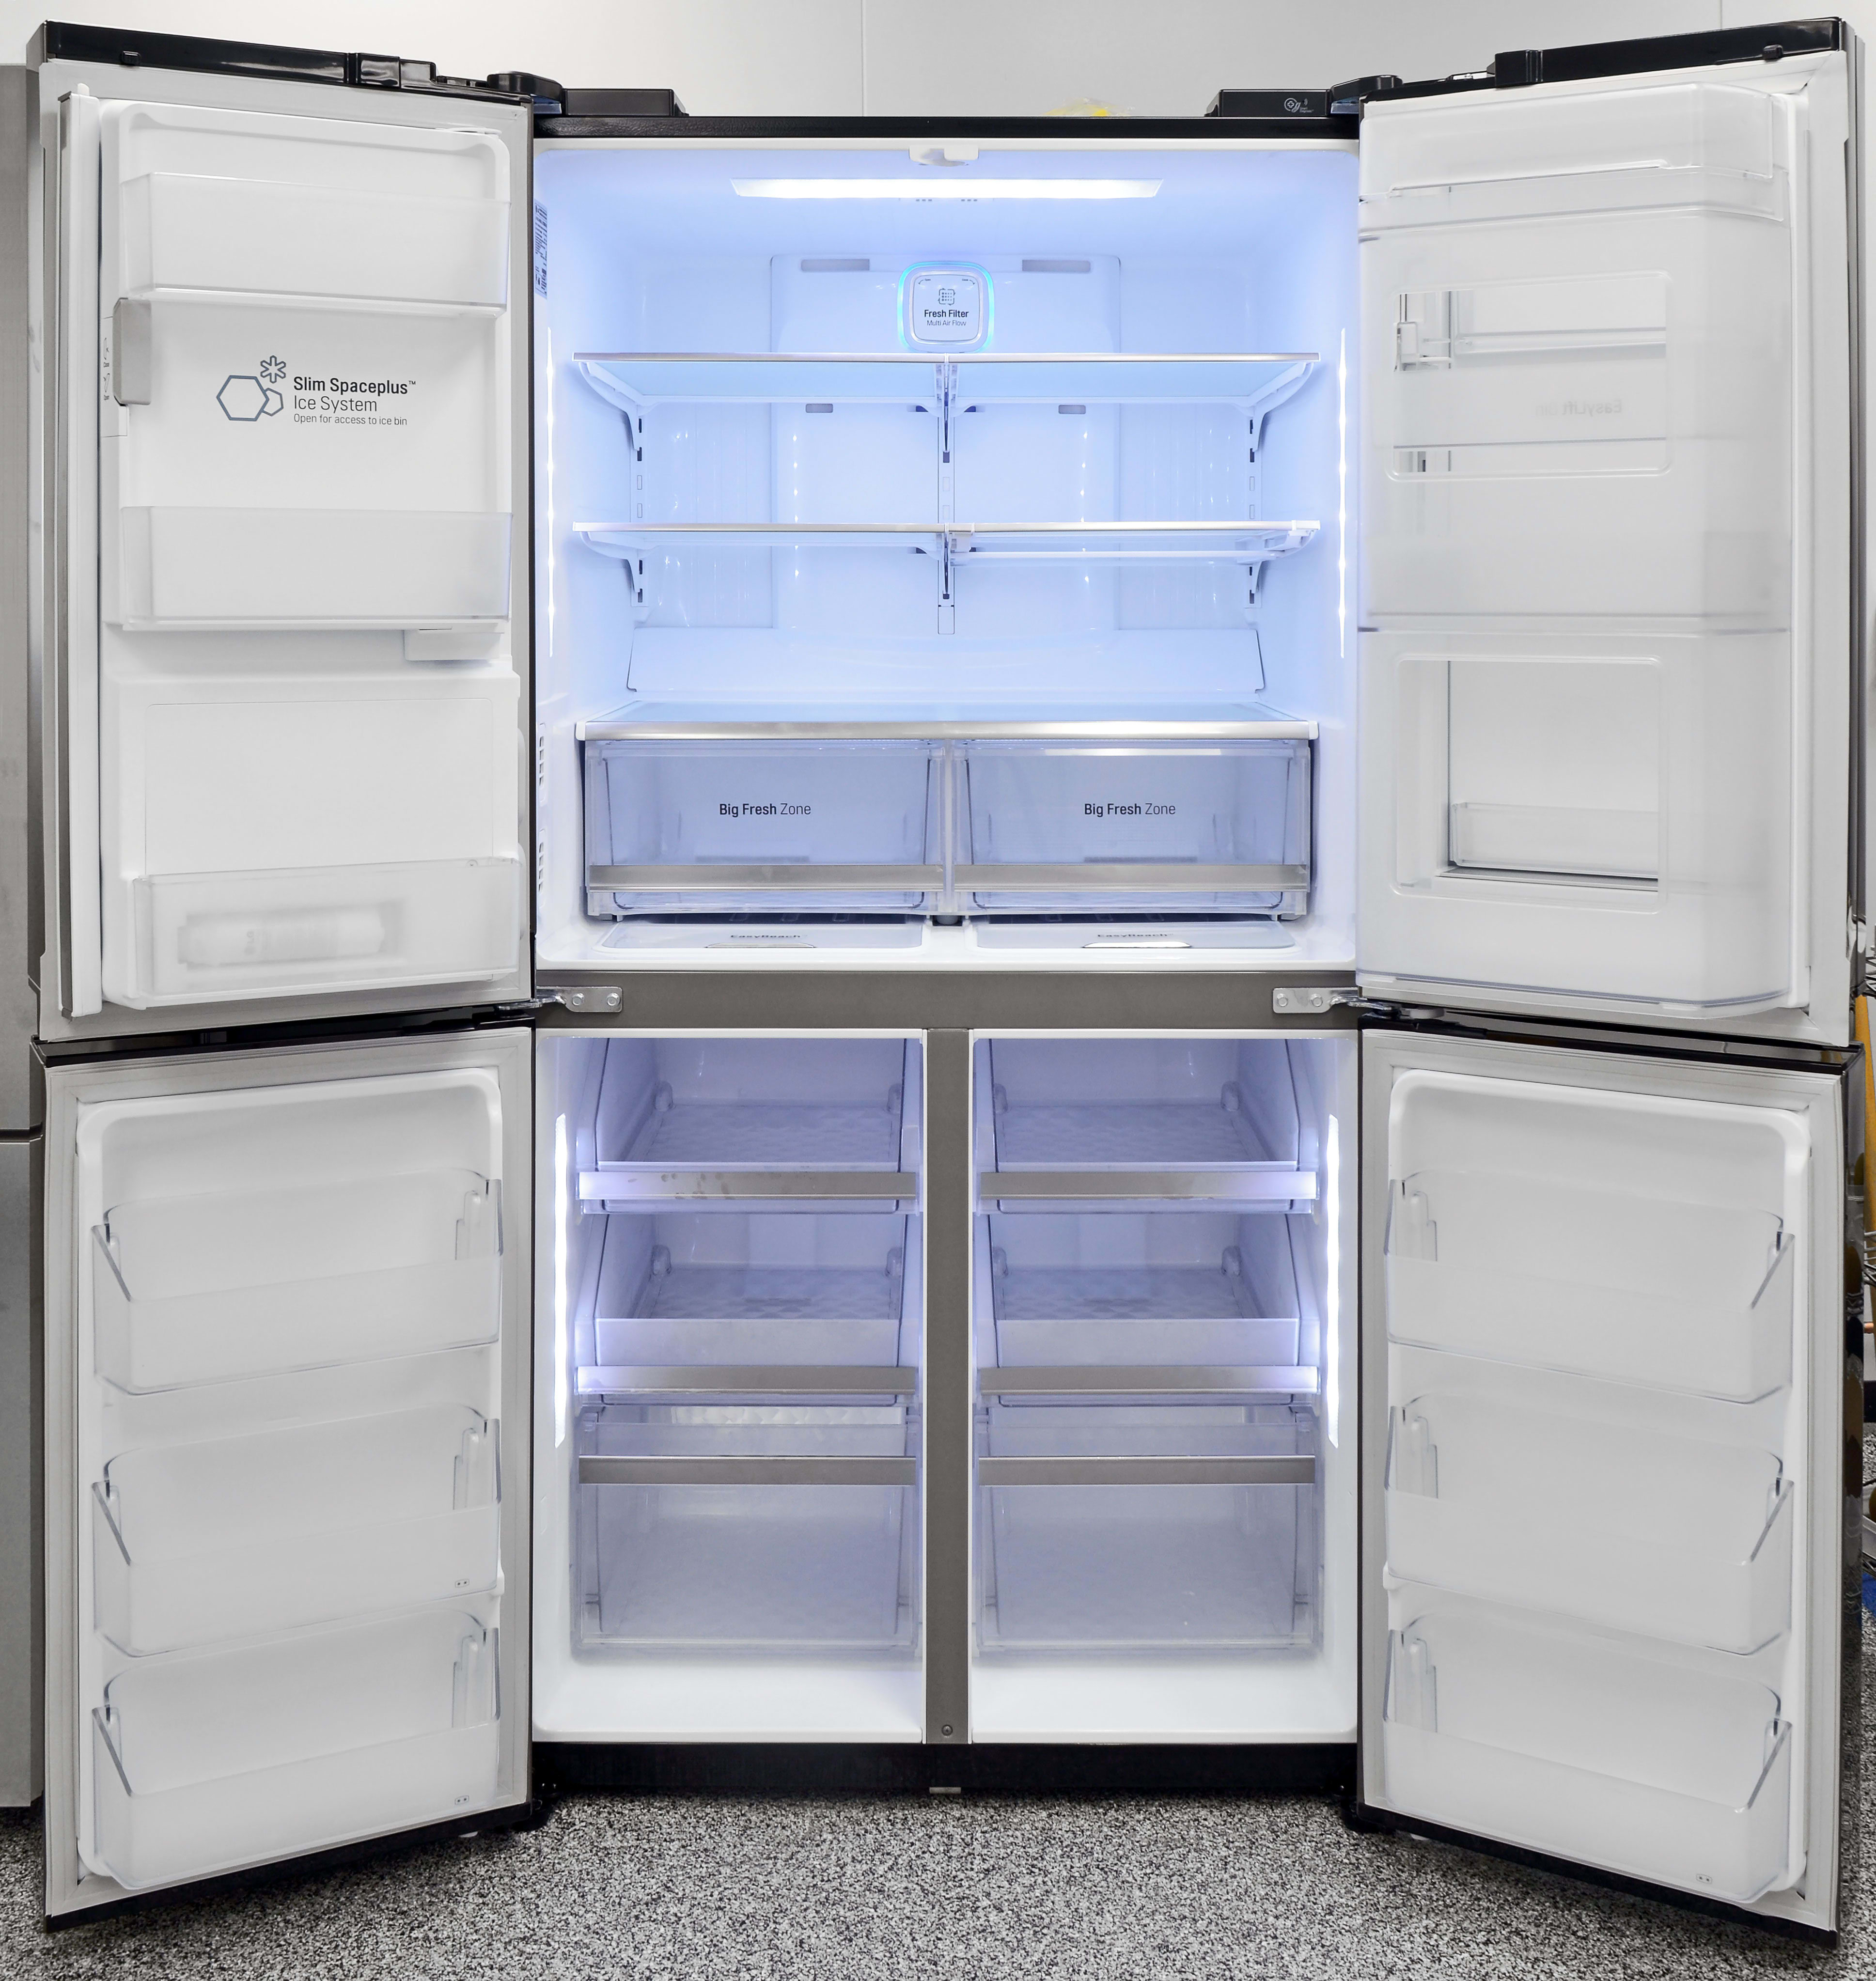 The LG LPXS30866D is a massive four-door fridge that's a sight to behold.